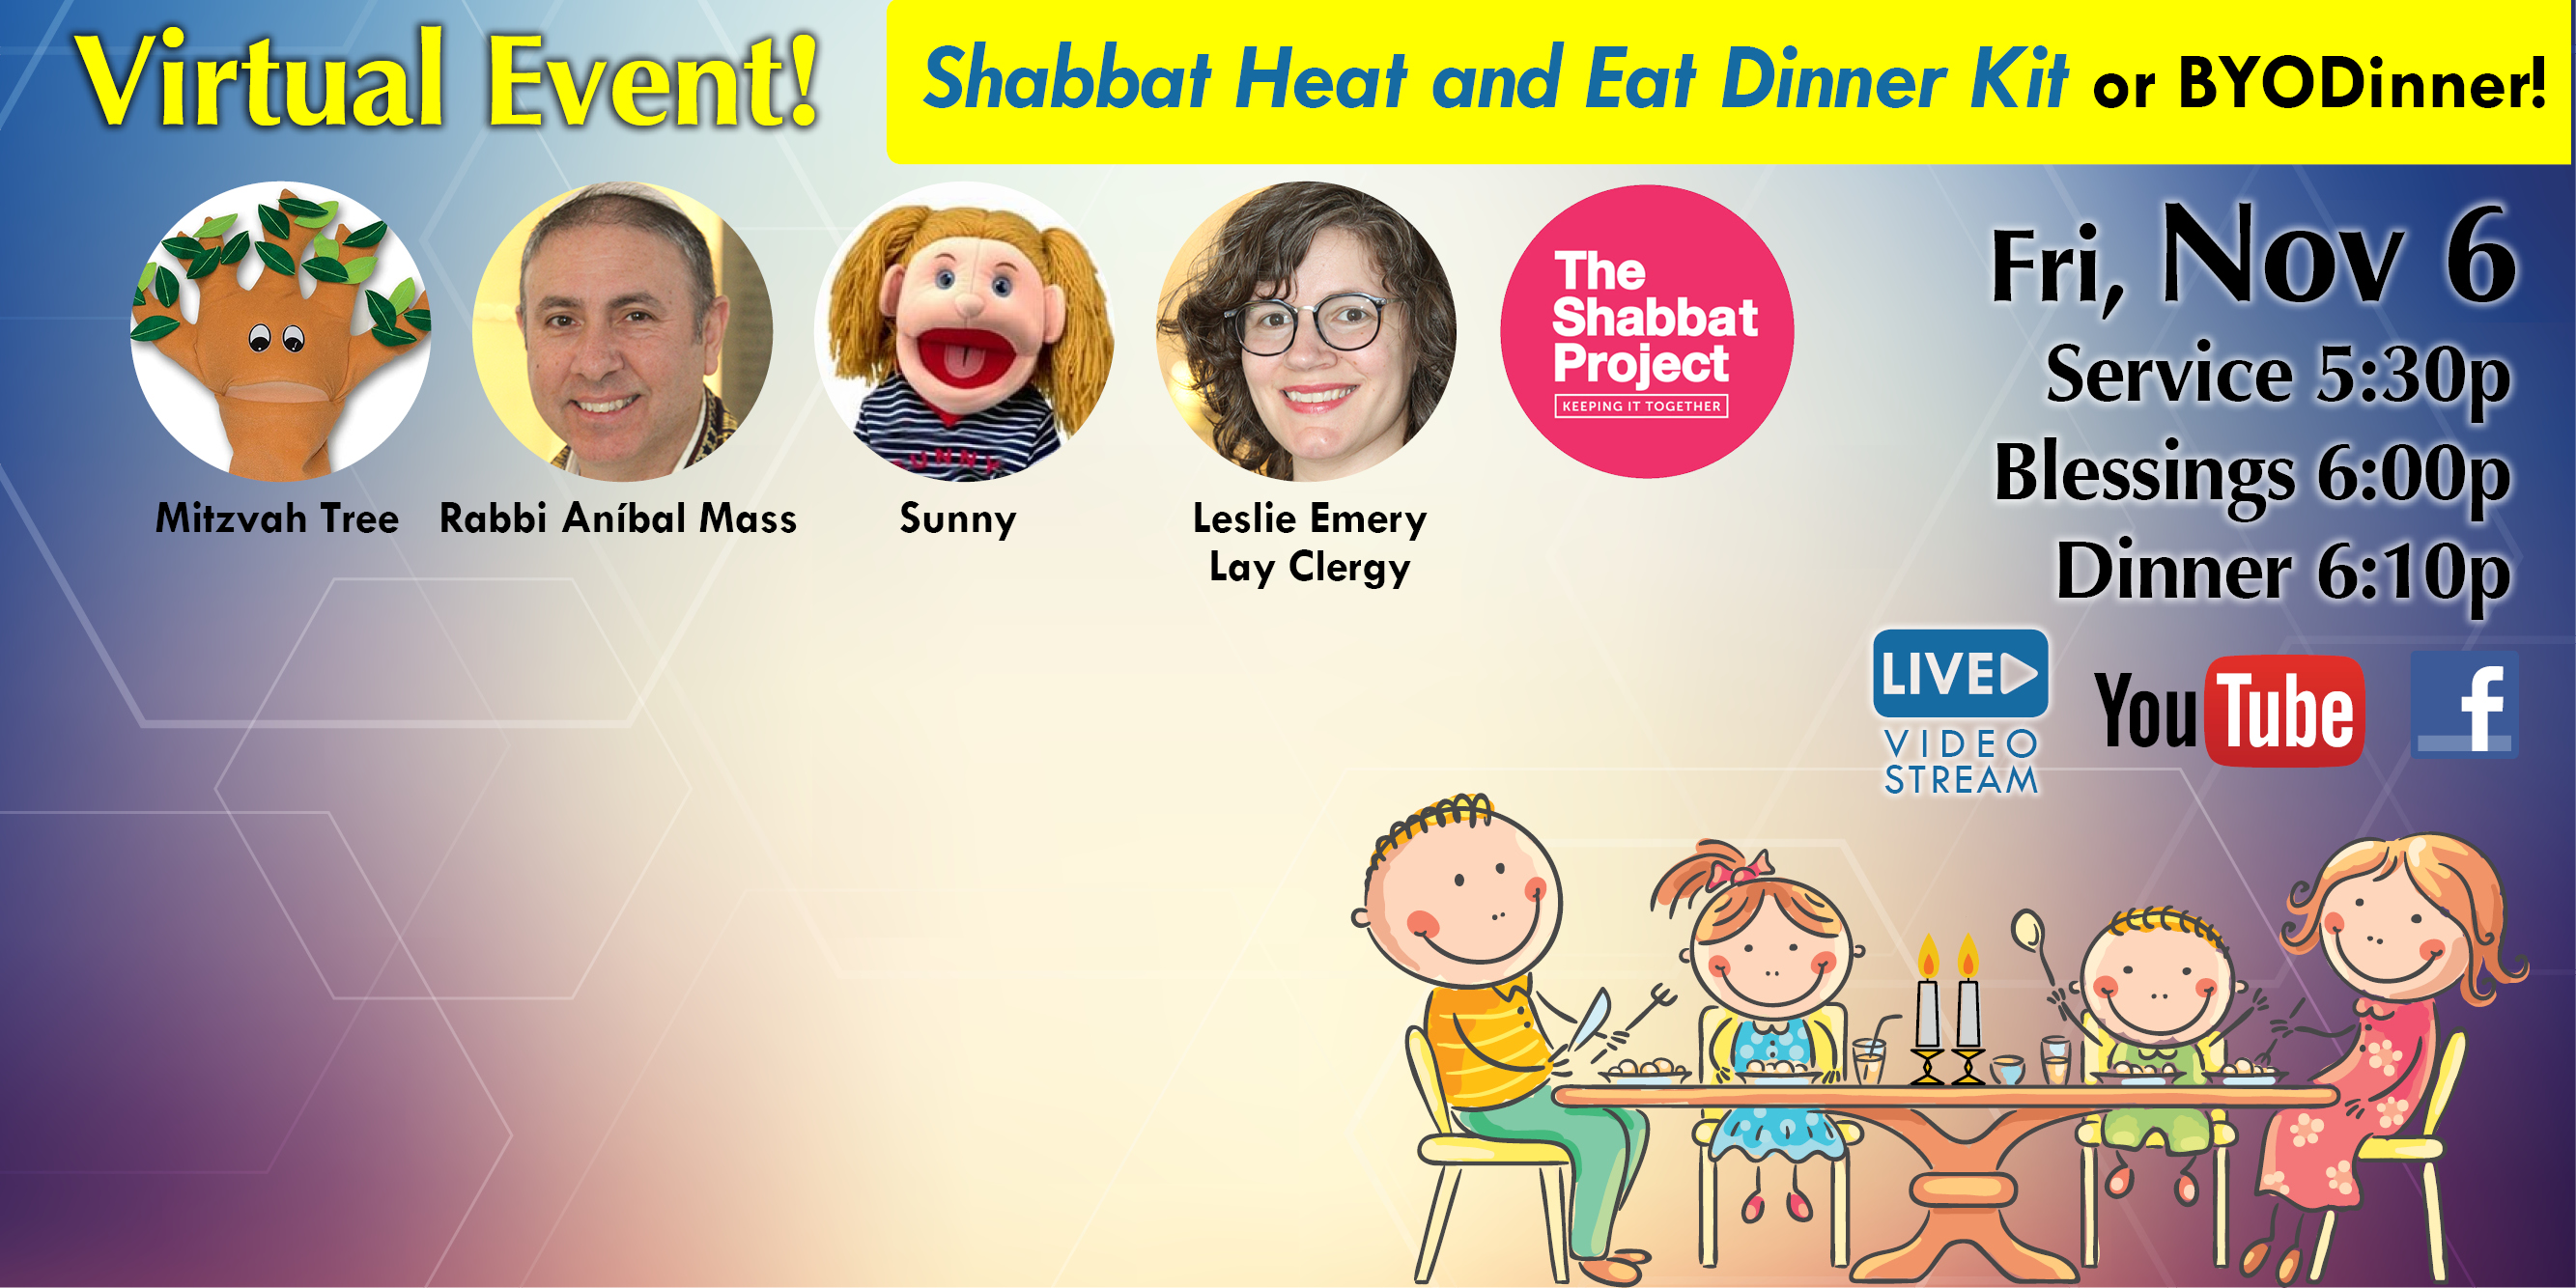 """<a href=""""https://www.szwinnipeg.ca/event/2020-10-06-FamilyDinner""""                                     target="""""""">                                                                 <span class=""""slider_title"""">                                     Virtual Family Shabbat Dinner (Heat and Eat Dinner Kit or BYODinner)                                </span>                                                                 </a>                                                                                                                                                                                       <span class=""""slider_description"""">Let's eat Shabbat dinner together! Order our 'Shabbat Heat and Eat Dinner Kit' or BYODinner! Order your kit by Tuesday, November 3. Join us online as we bring in Shabbat and celebrate the International Shabbat Project through music and song featuring Rabbi Anibal Mass and Leslie Emery, Lay Clergy, with our puppet friends, Sunny and the Mitzvah Tree!</span>                                                                                     <a href=""""https://www.szwinnipeg.ca/event/2020-10-06-FamilyDinner"""" class=""""slider_link""""                             target="""""""">                             More Information                            </a>"""